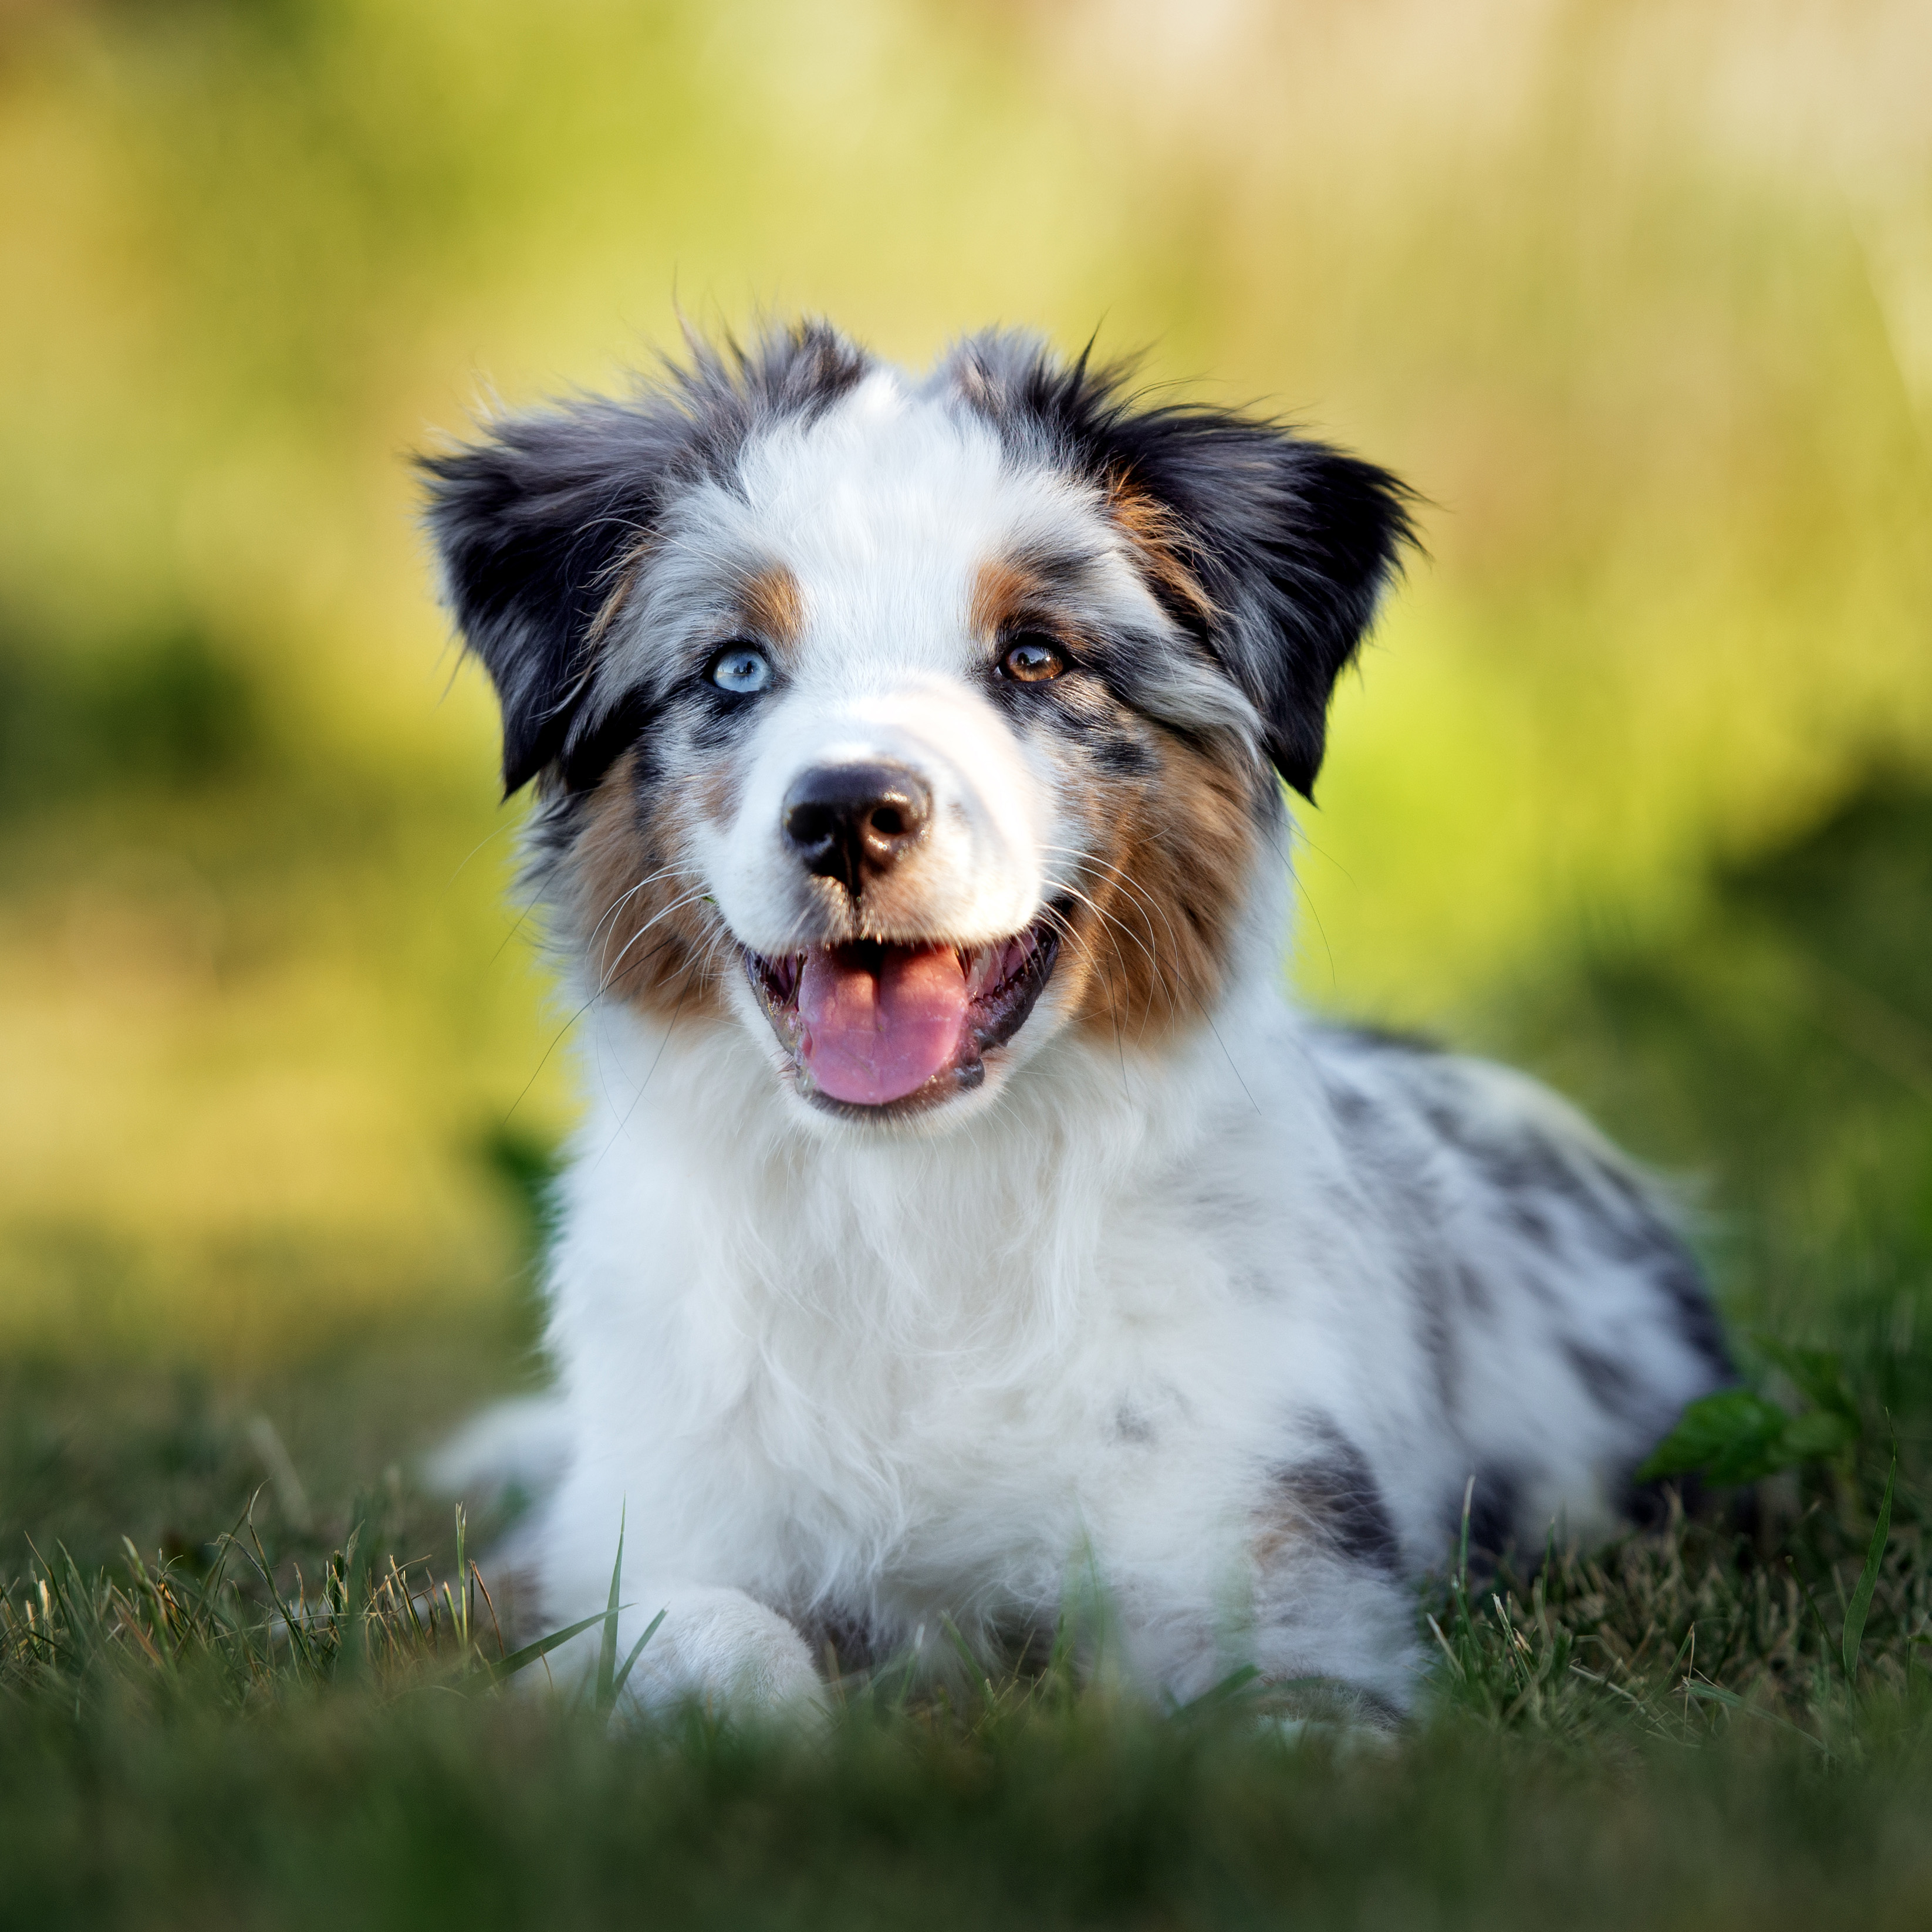 Australian Shepherd Puppies Animal Kingdom Arizona